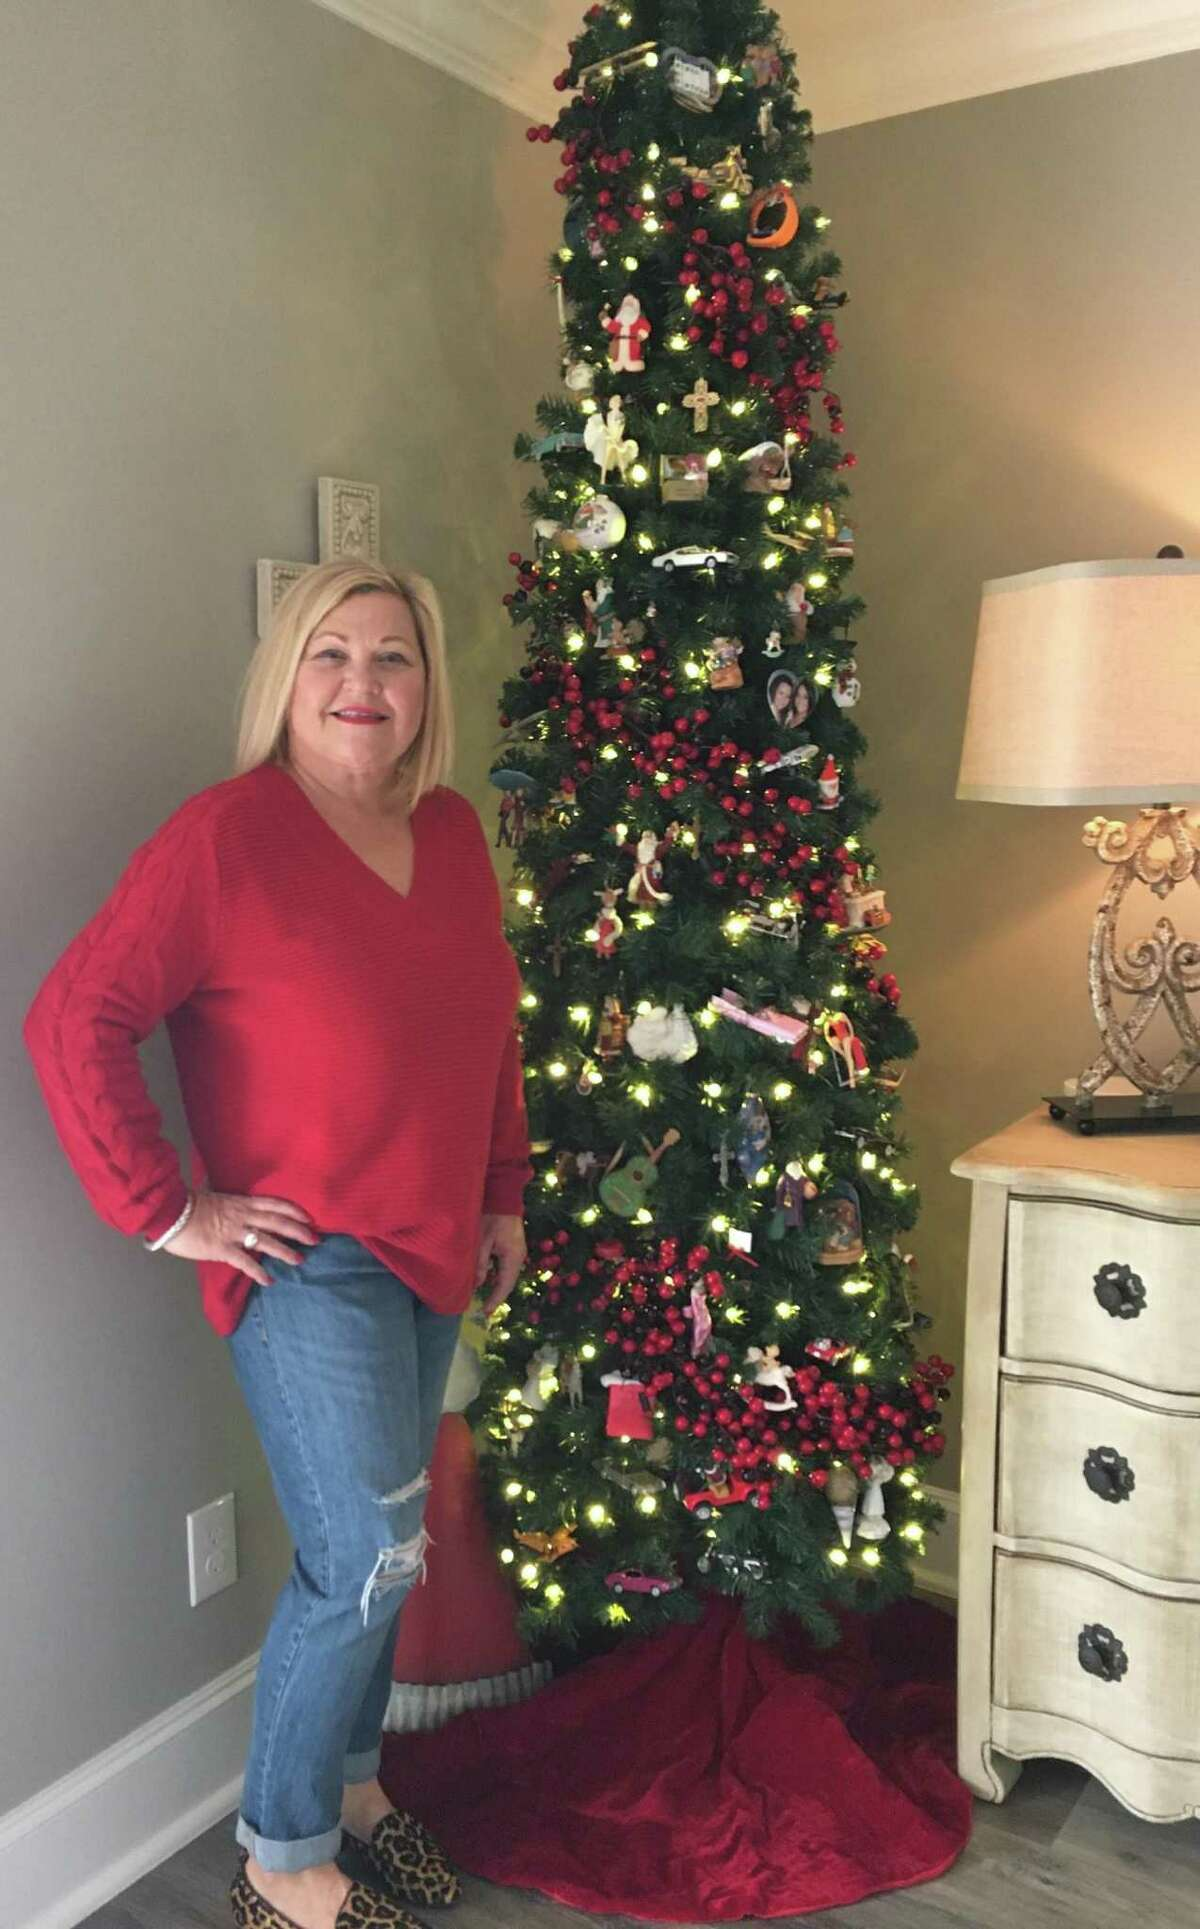 LindaEdmiaston placed this tree with ornaments of Santas, motorcycles and trucks in a second-floor bedroom of her Sugar Creek home. There are stories of family and friends associated with the ornaments.